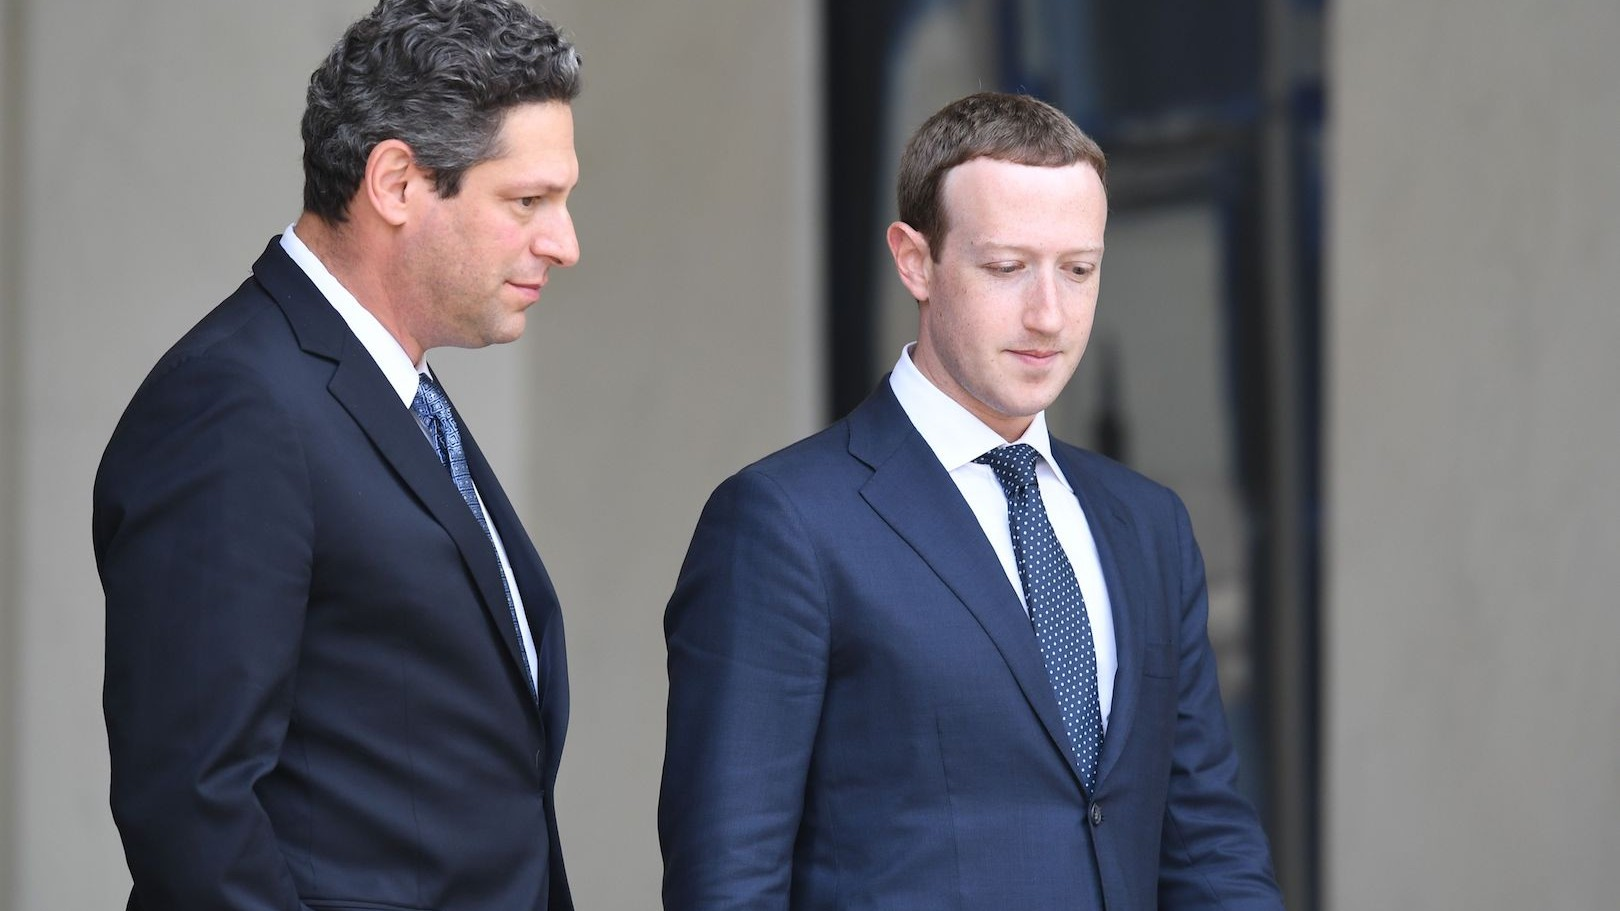 Facebook has a big Kavanaugh problem — and it won't go away